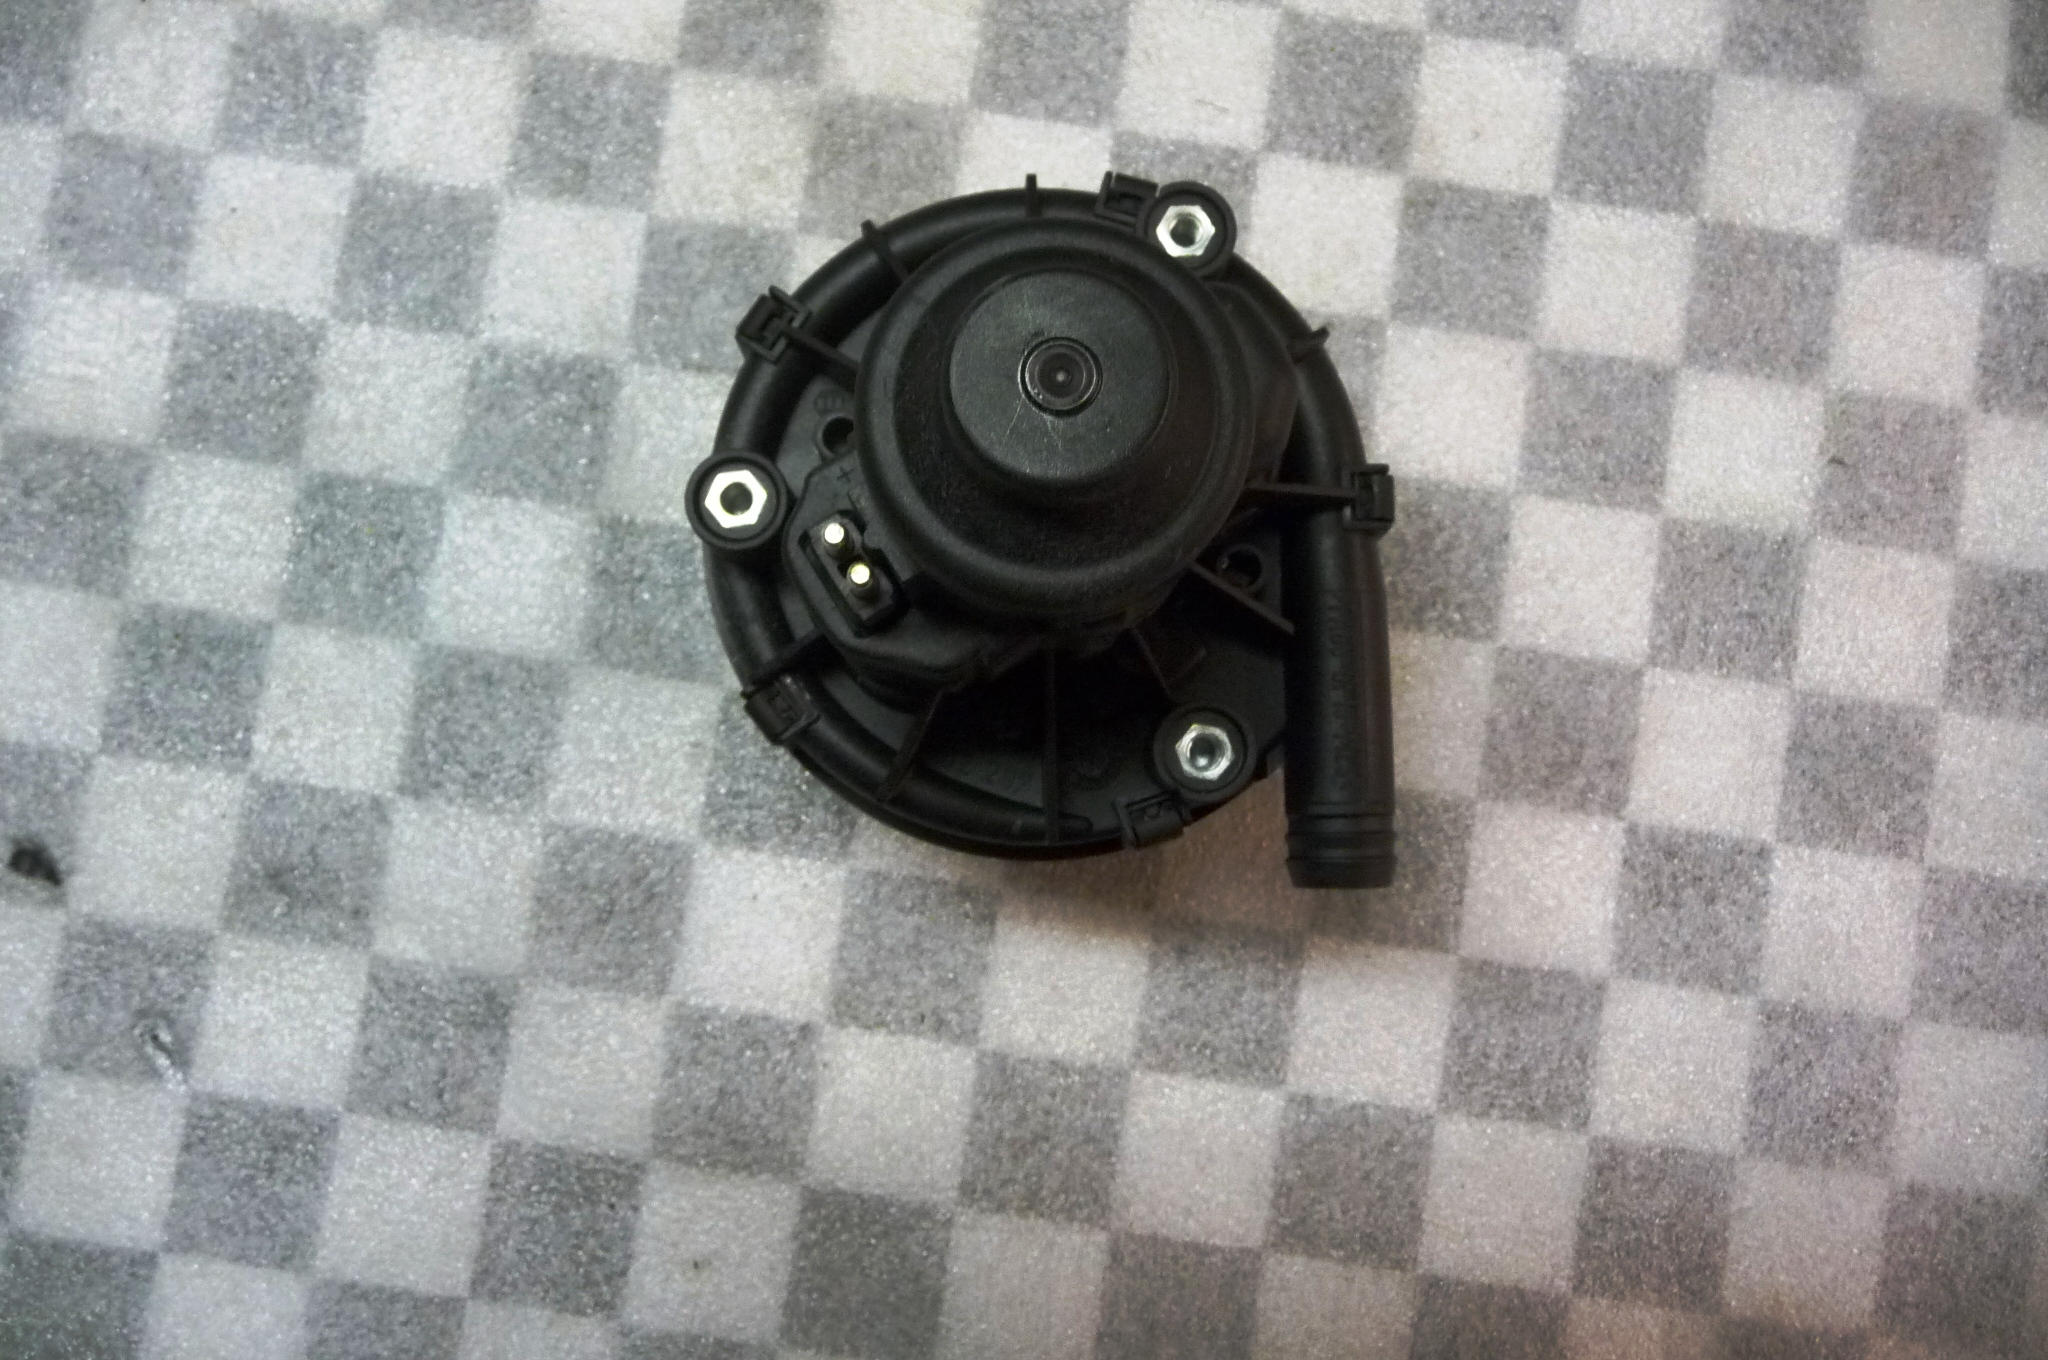 Mercedes Benz C E G R S CL CLK CLS SL SLK Electric Air Injection Pump 0001405785